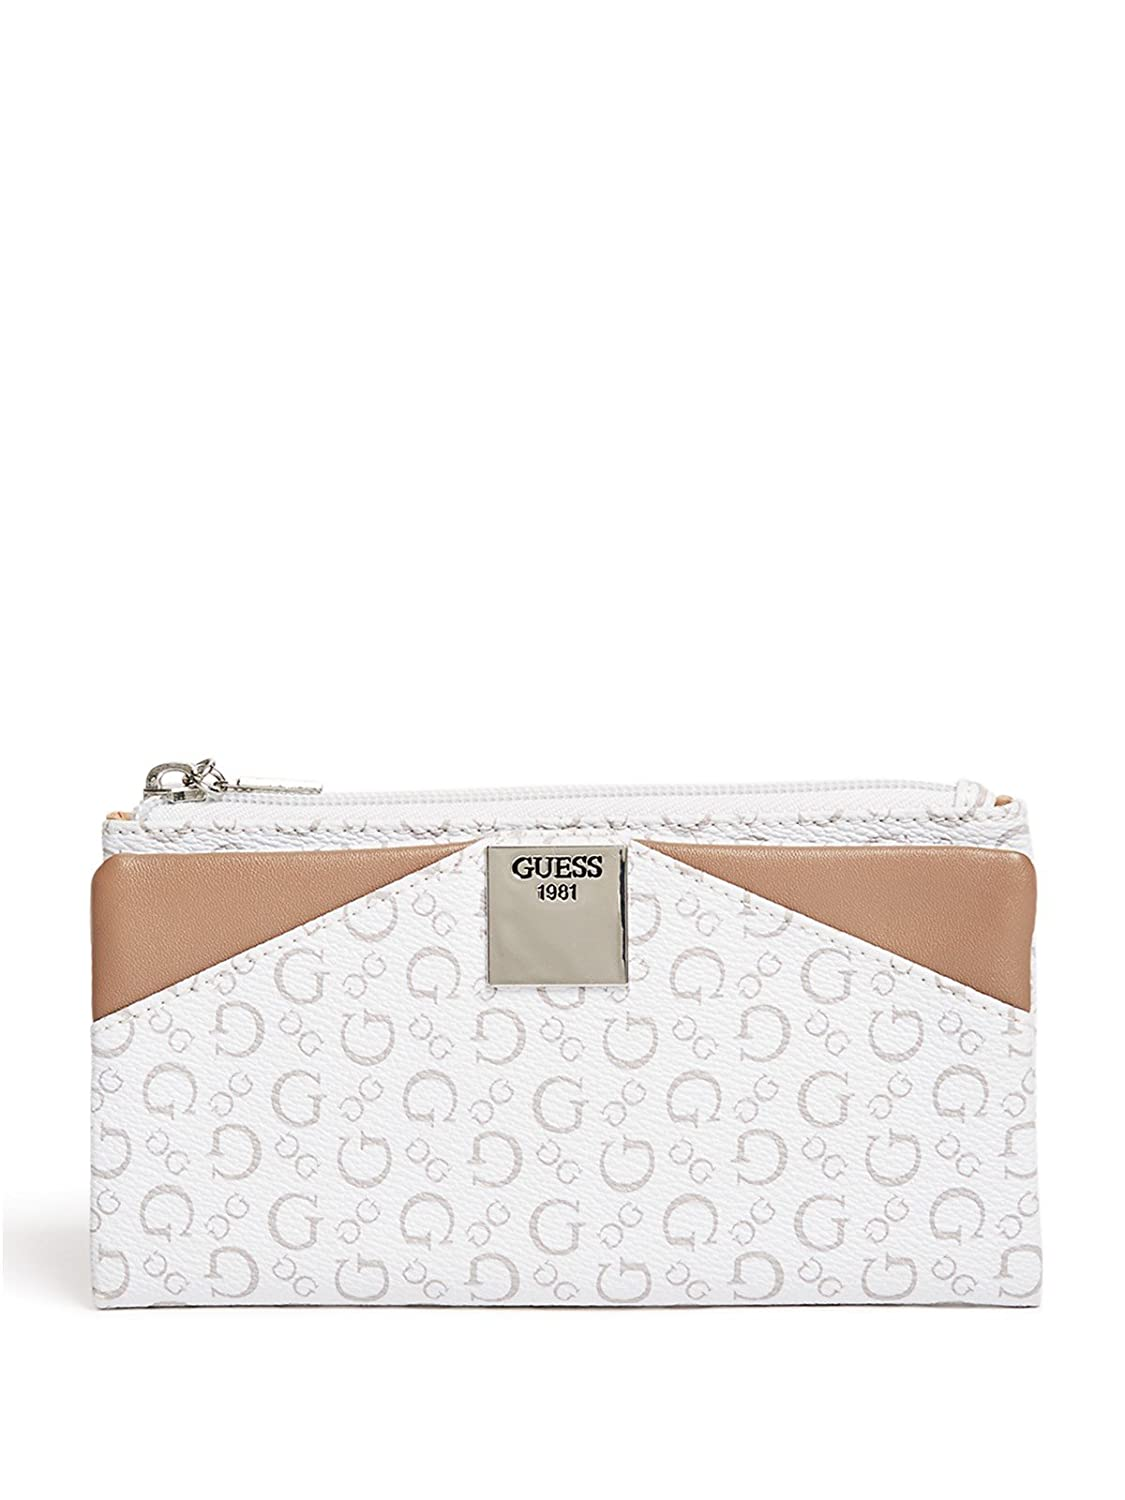 15ec8ff47a87 GUESS Factory Women's Dryden Foldover Wallet: Amazon.ca: Luggage & Bags